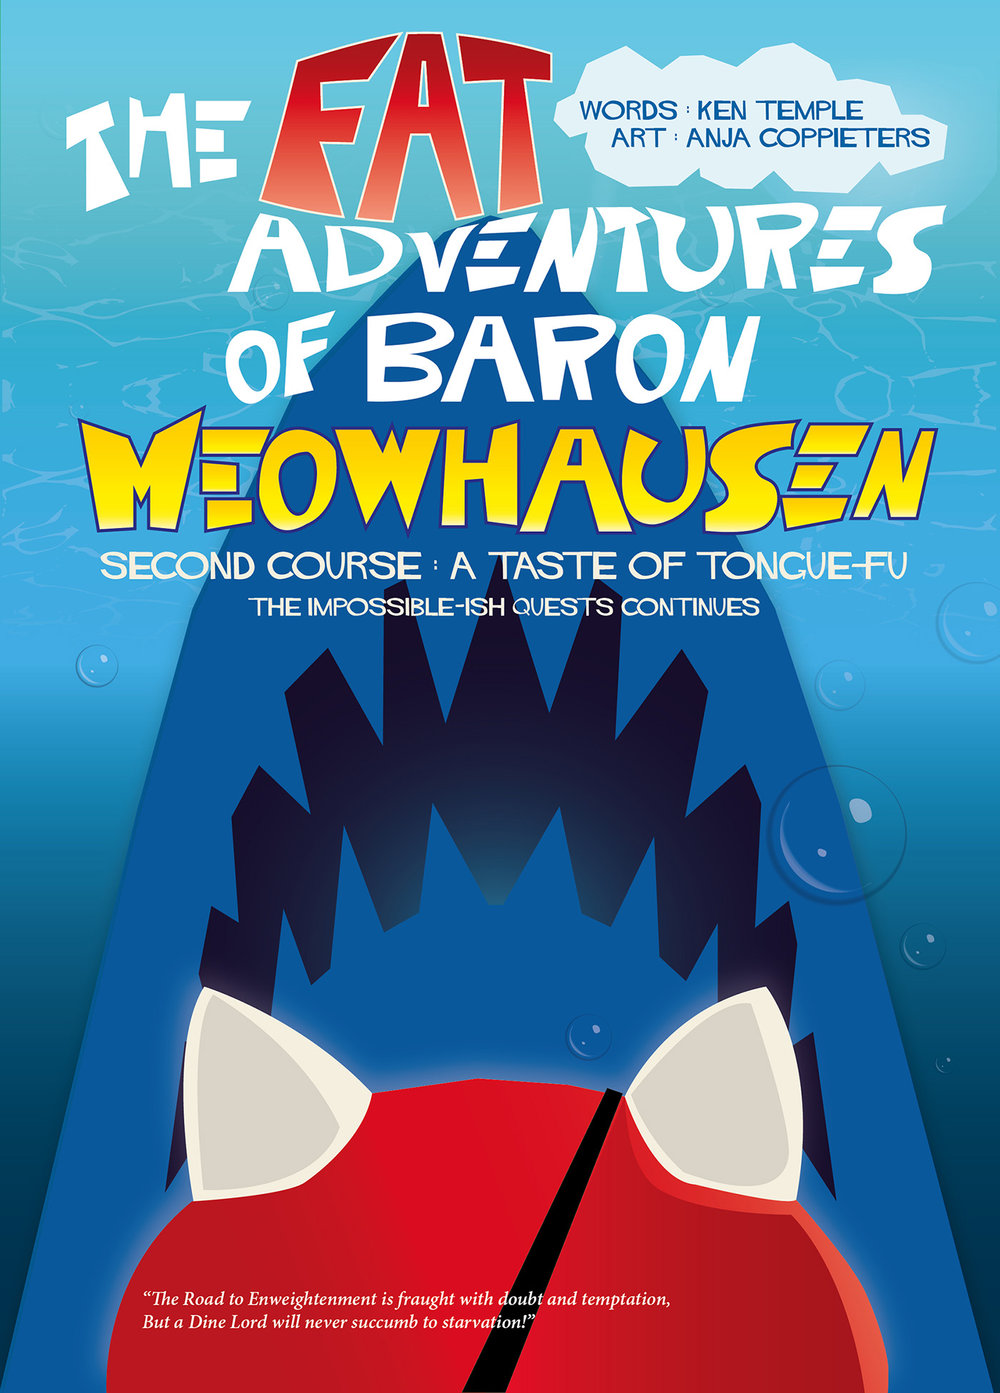 The Fat Adventures of Baron Meowhausen — Second Course: A Taste of Tongue-Fu